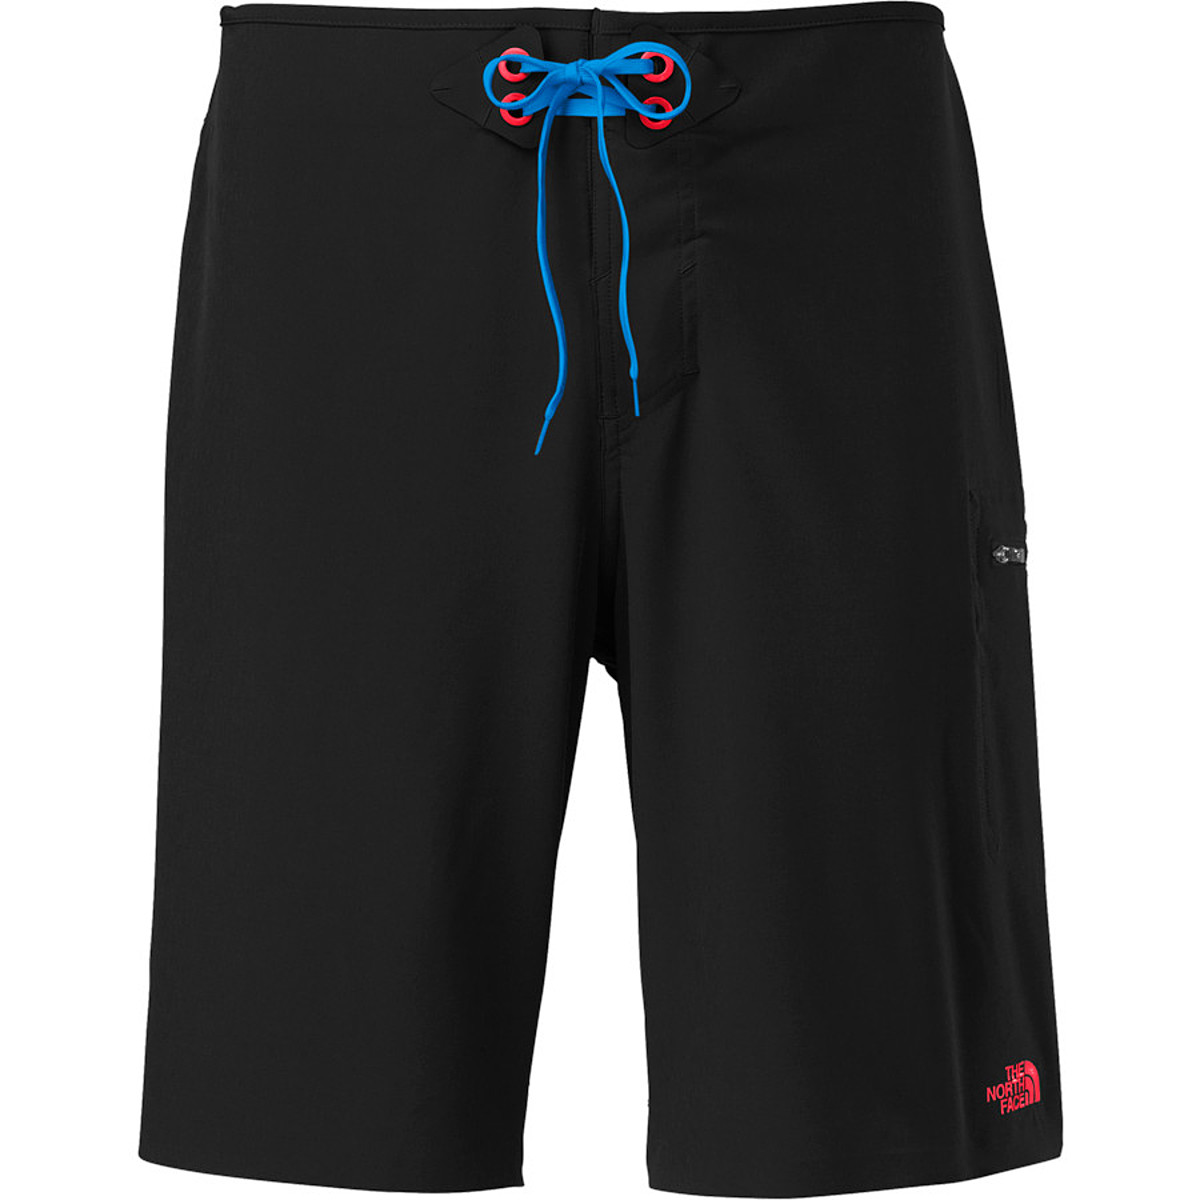 The North Face Water Dome Boardshorts